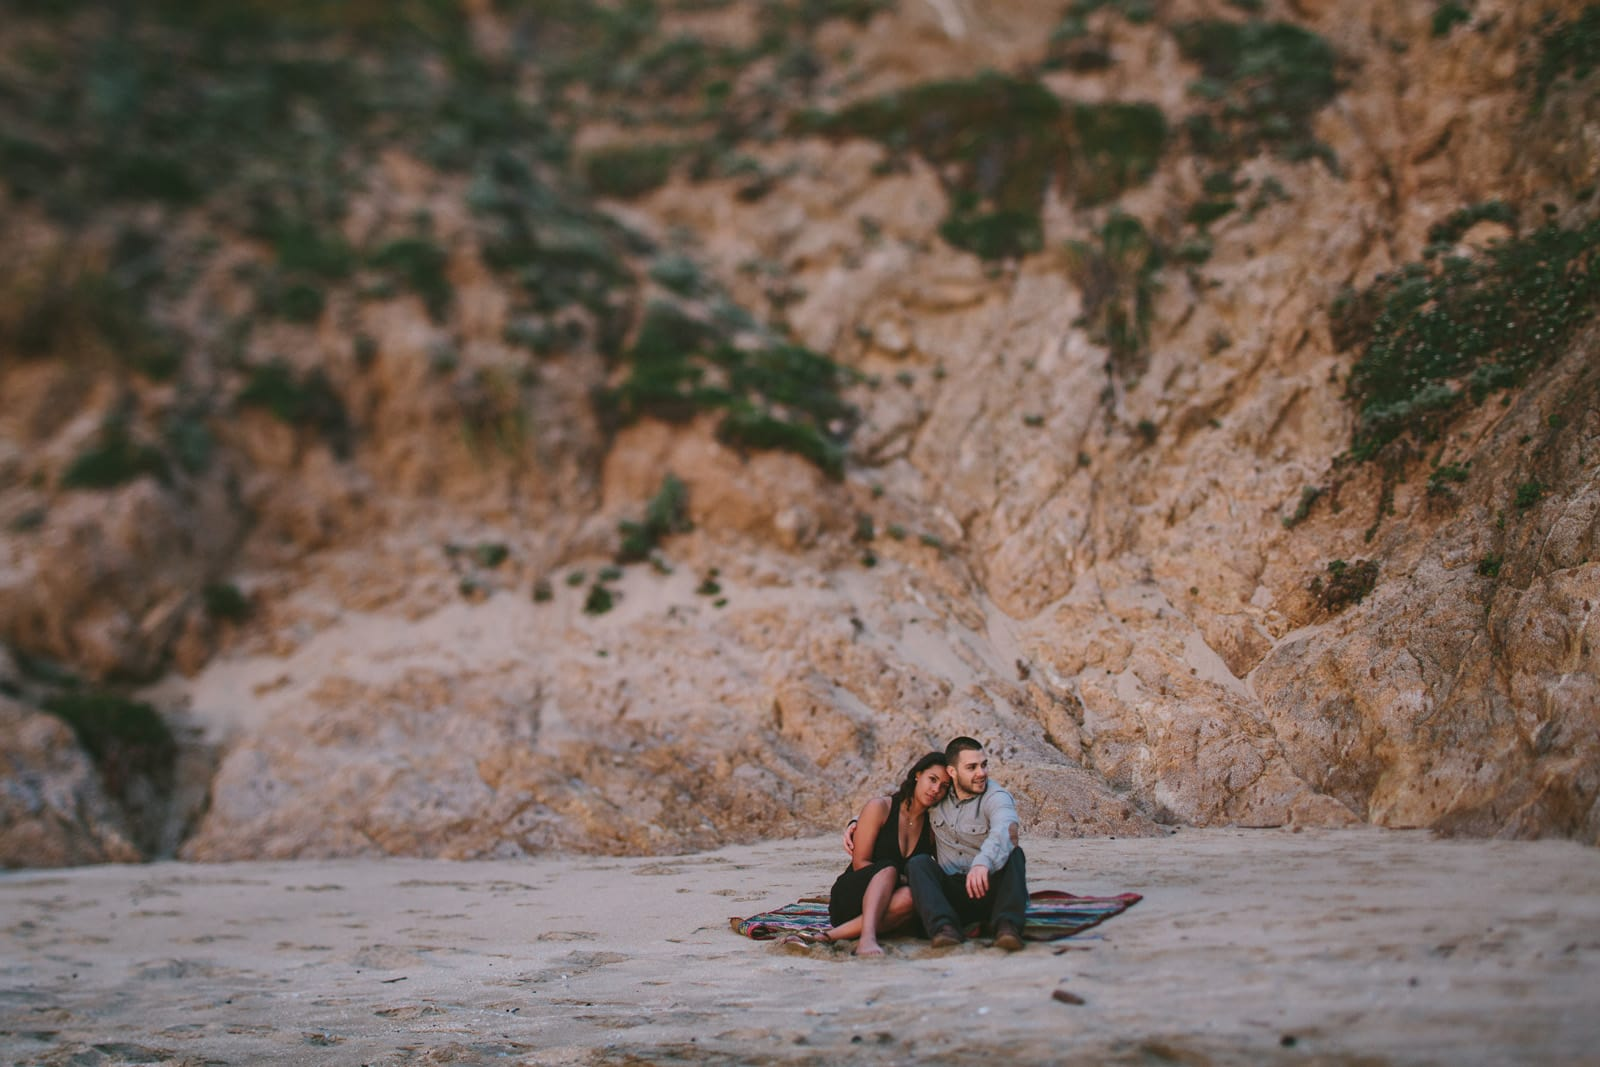 San_Francisco_Engagment_Session_Beach_Engagment_Session_020